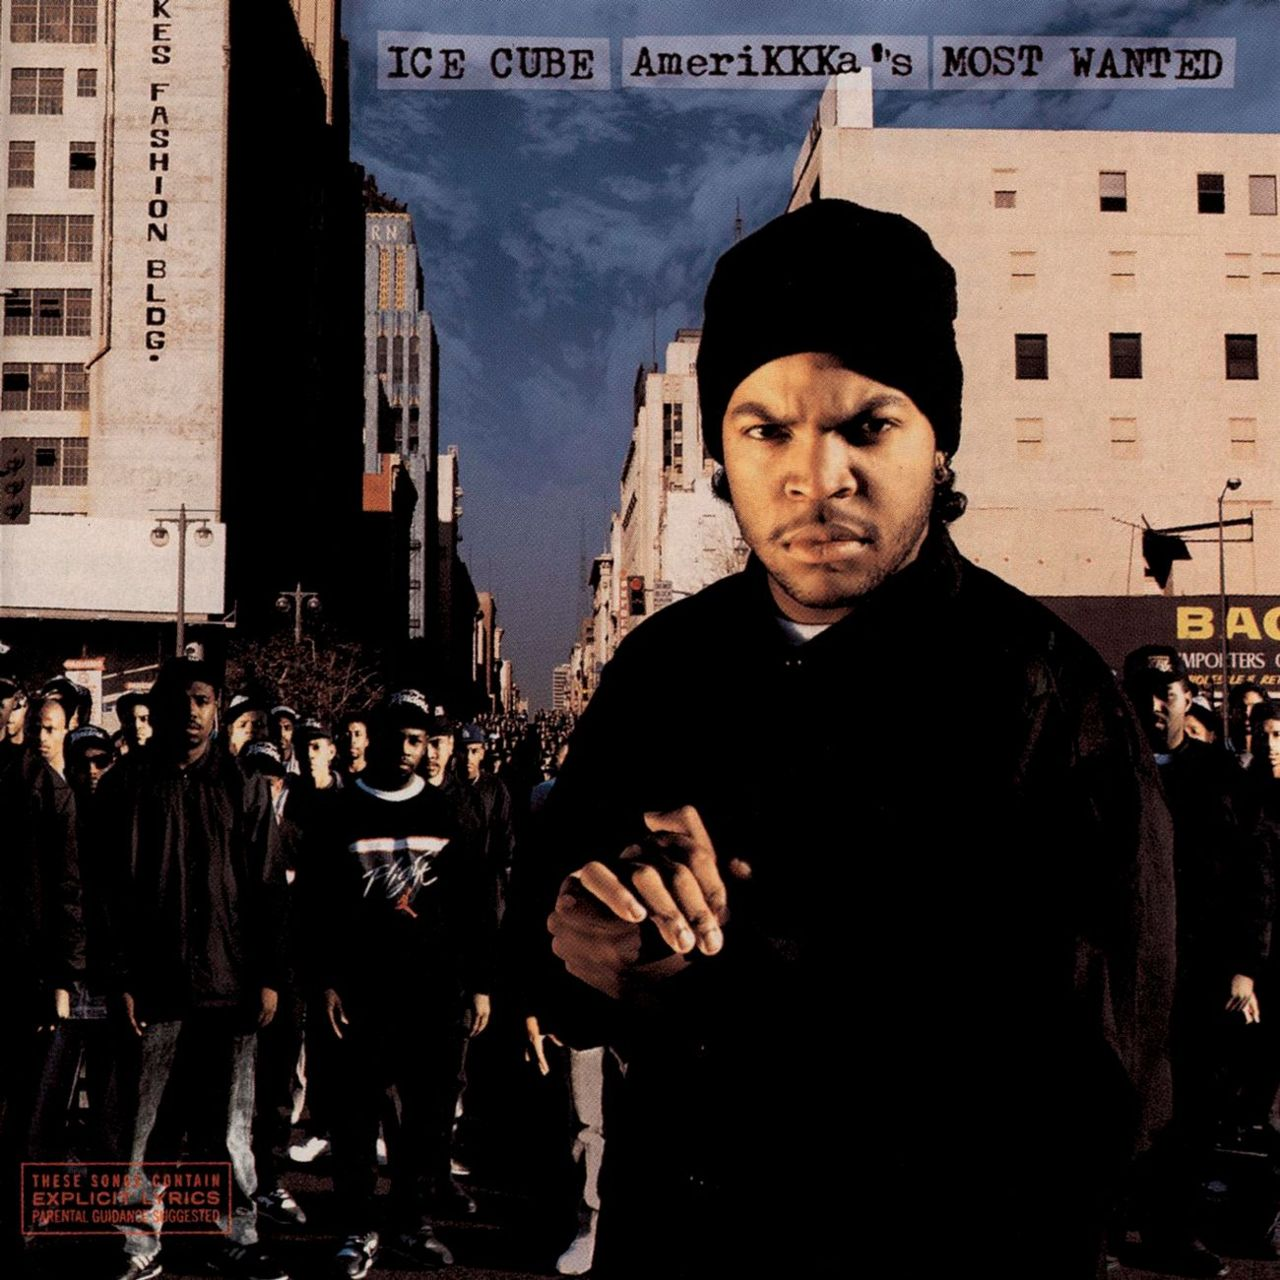 upnorthtrips: BACK IN THE DAY |5/16/90| Ice Cube releases his debut album, AmeriKKKa's Most Wanted, through Priority Records